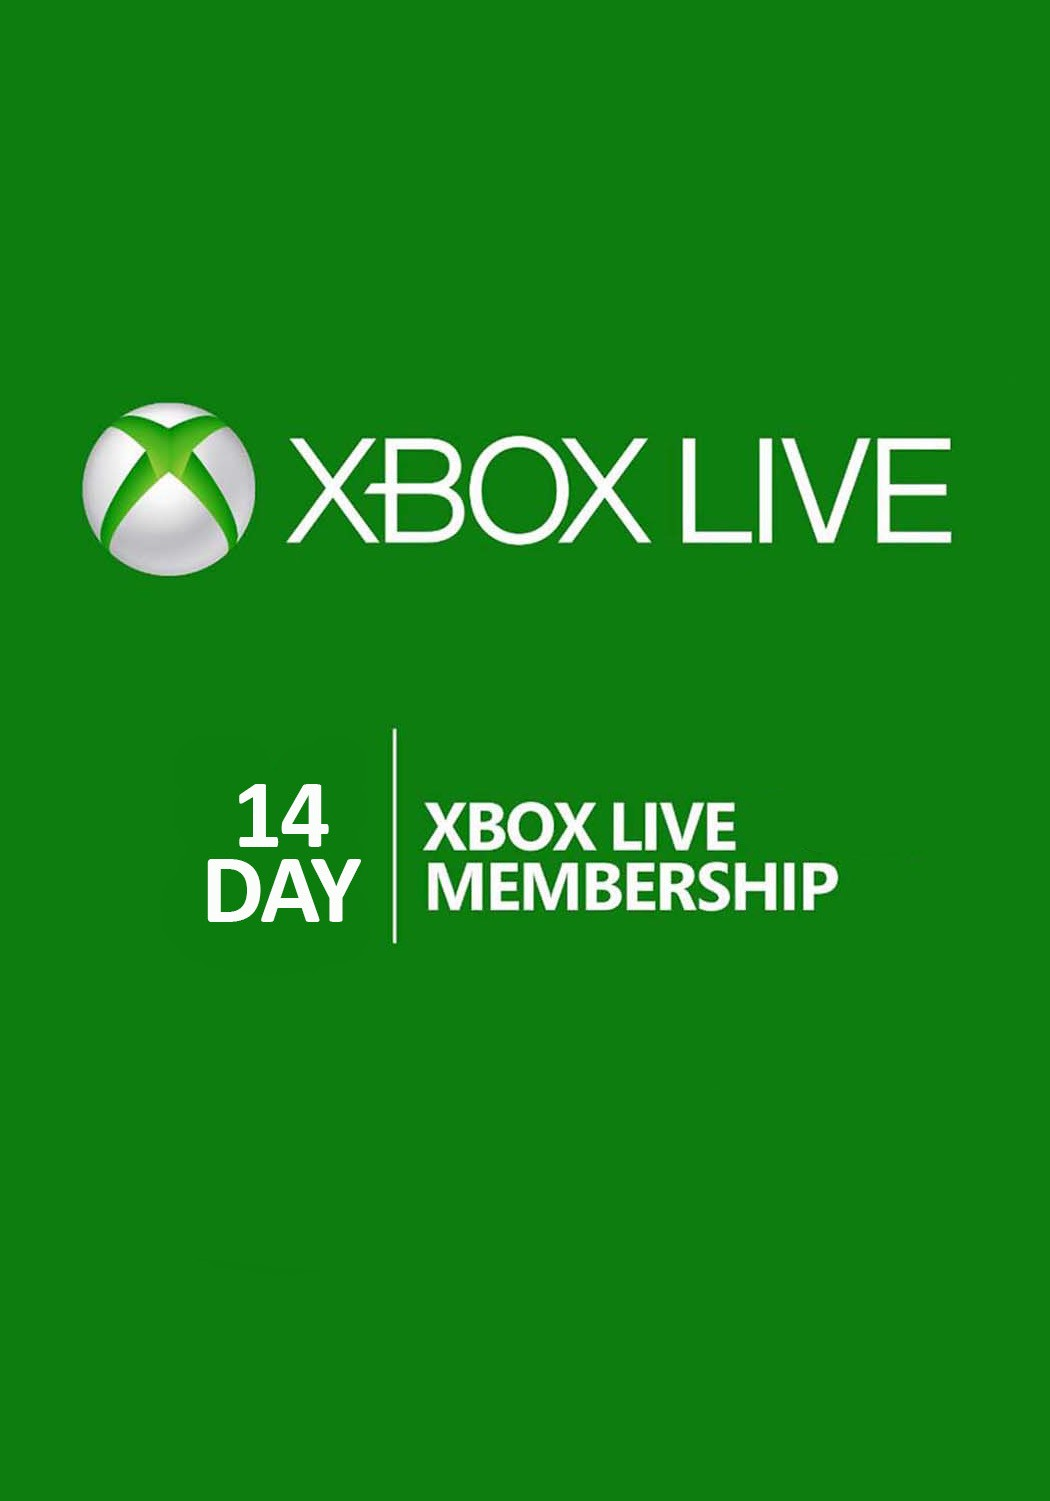 Xbox Live Gold - 14 days (Xbox One/360) + Game Pass